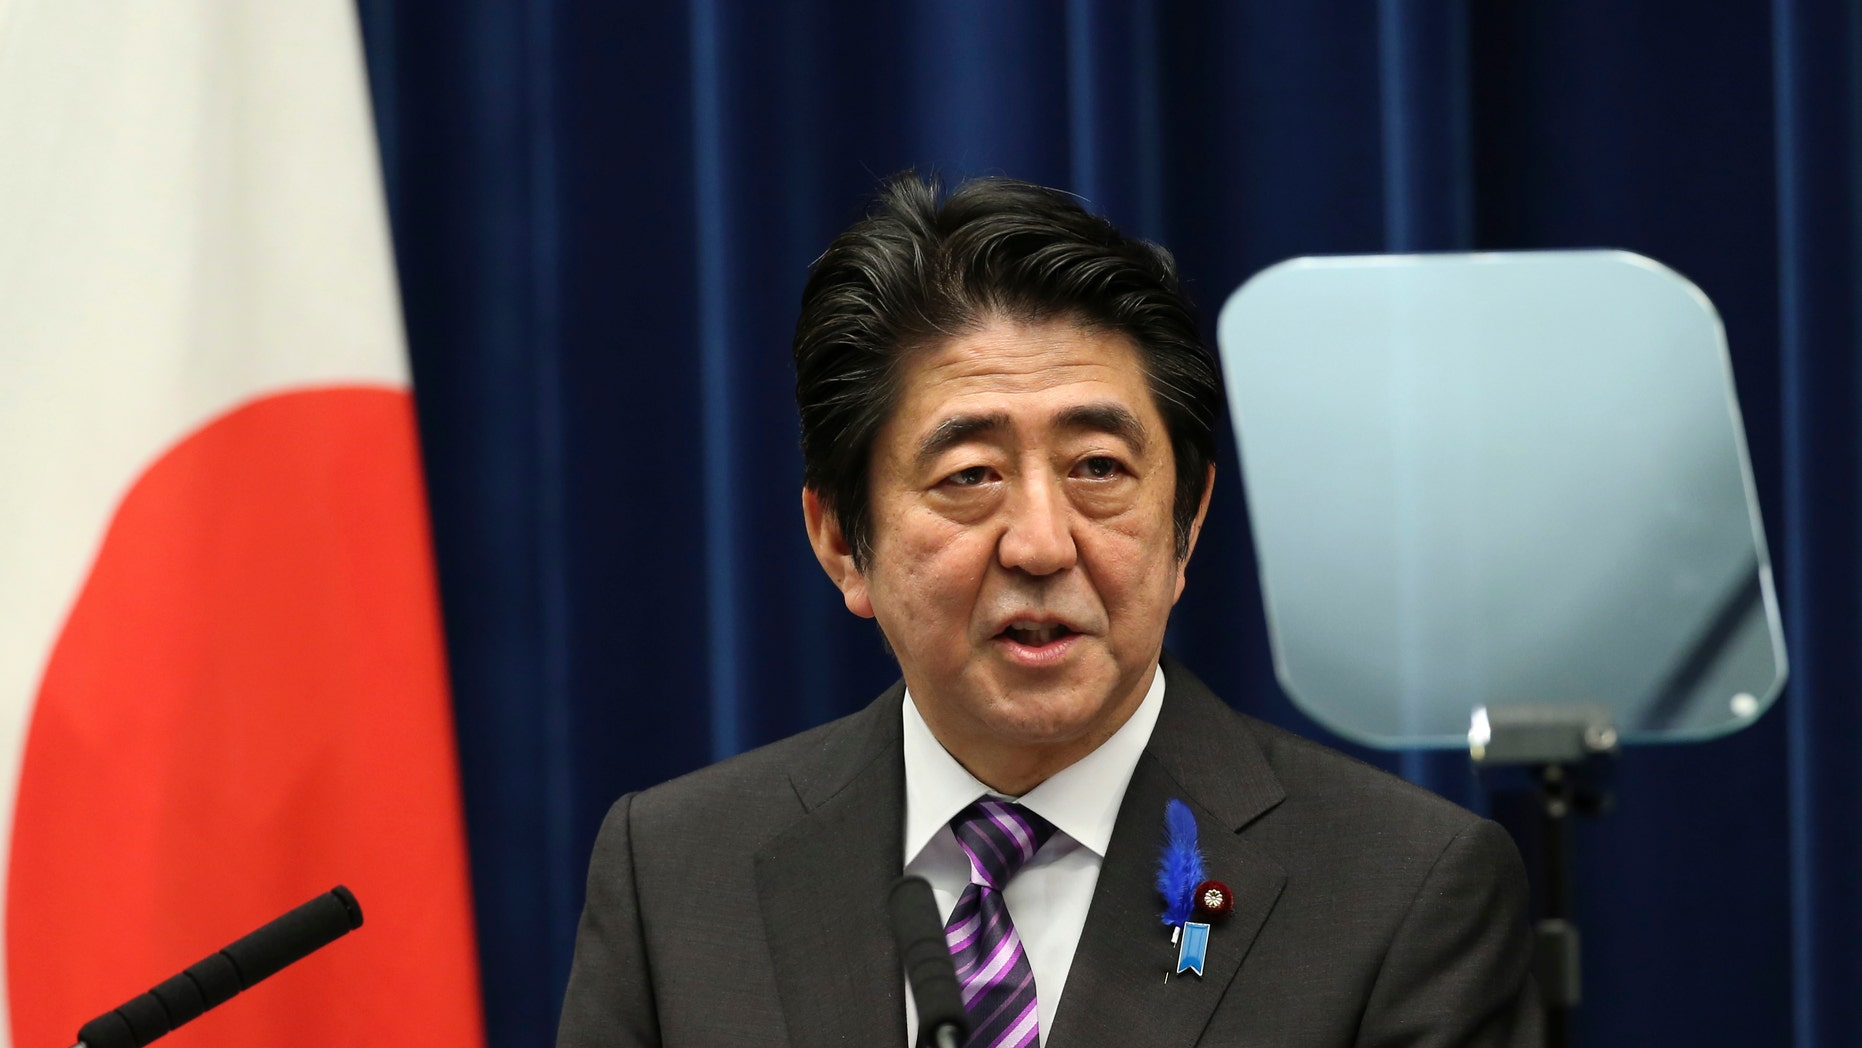 July 2, 2014: Japanese Prime Minister Shinzo Abe speaks during a press conference at his official residence in Tokyo.